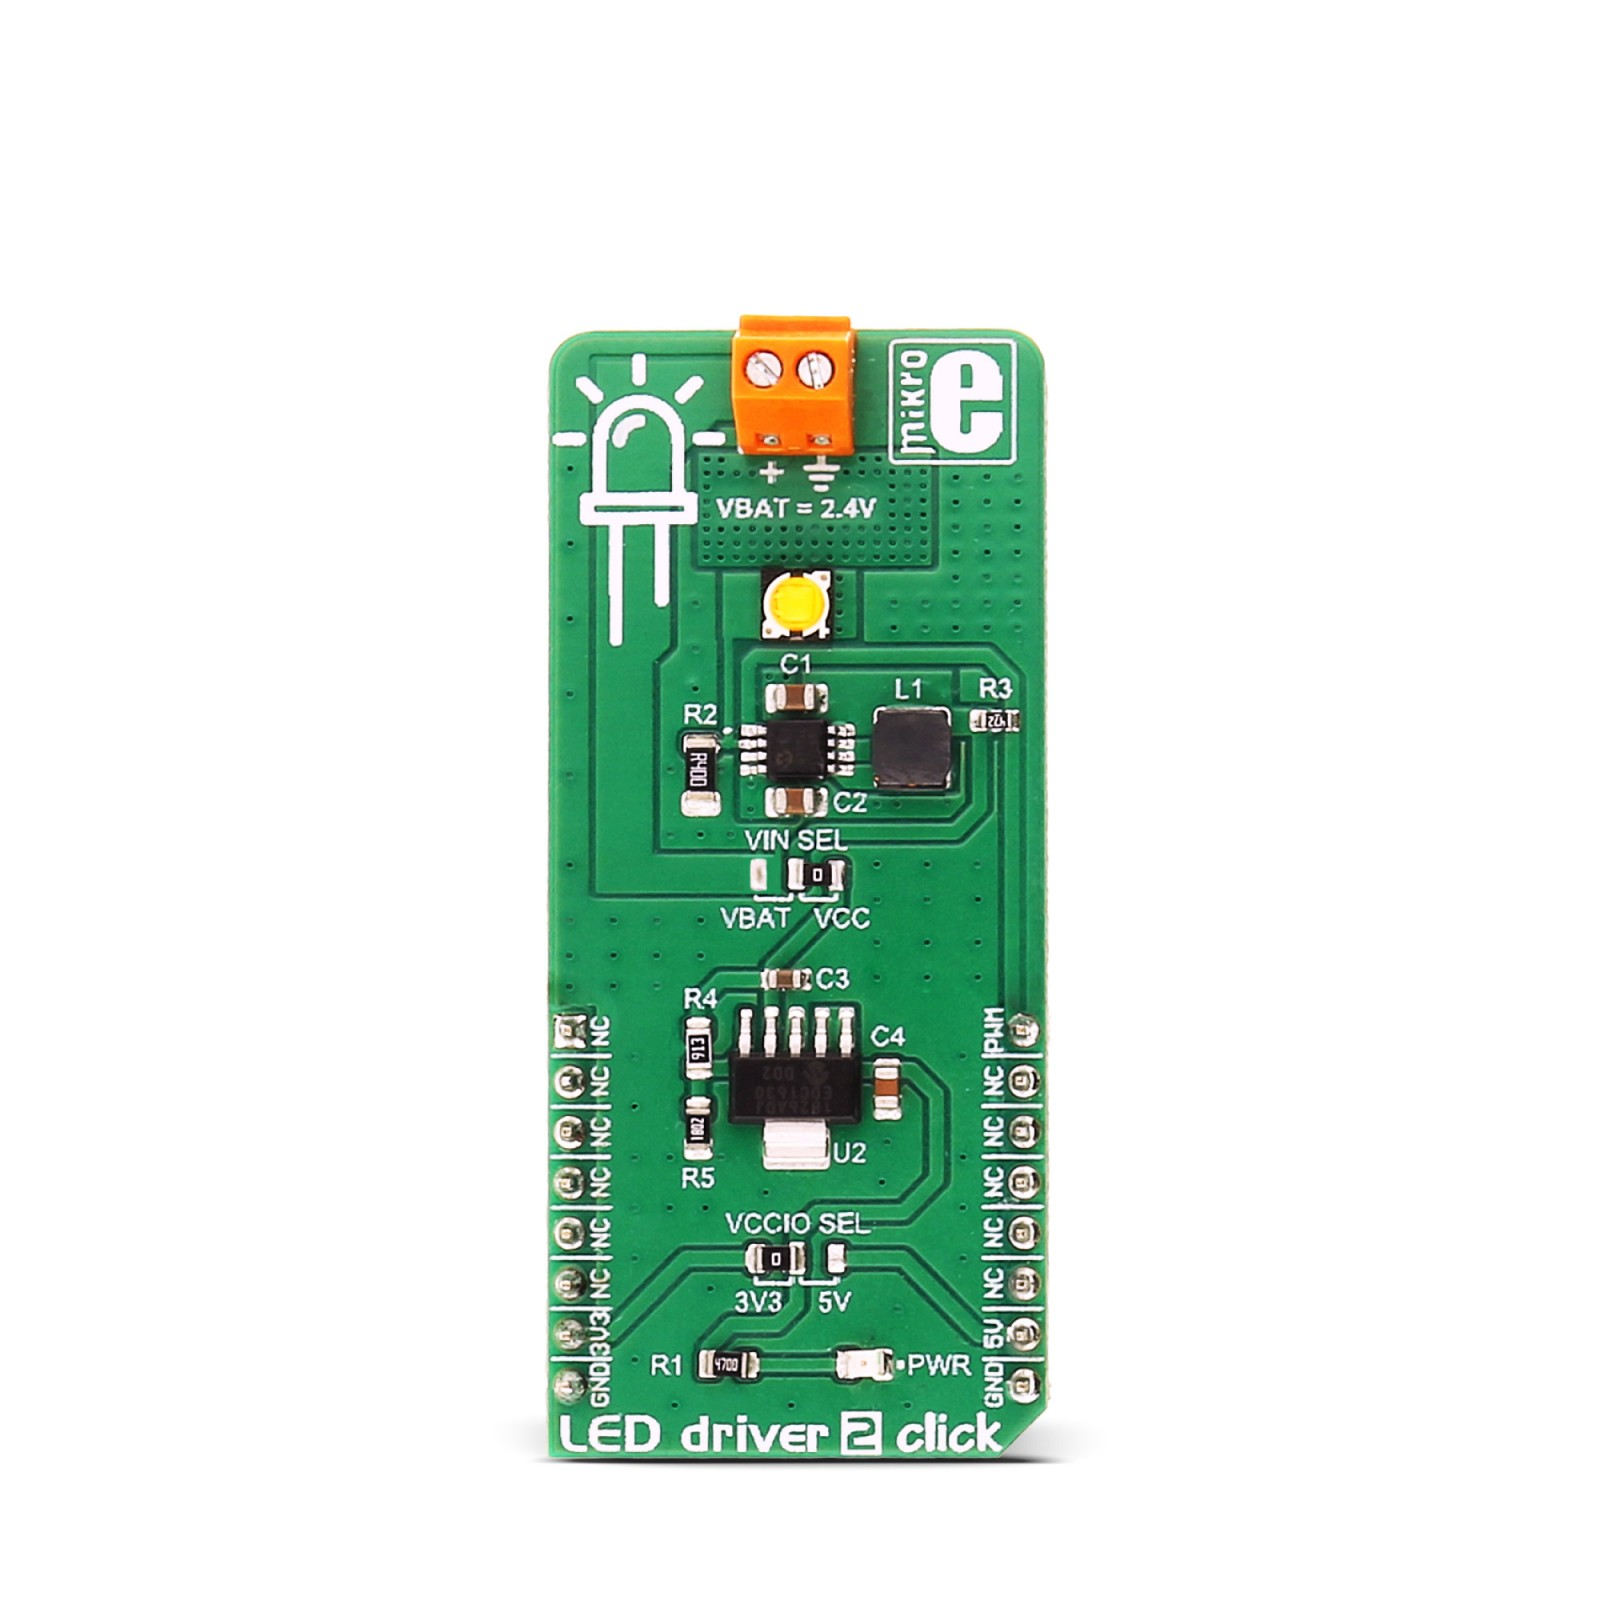 Led Driver 2 Click Mikroelektronika Something In Either The Schematic Of Circuit Or With Mgctlbxnmzp Mgctlbxv5112 Mgctlbxlc Mgctlbxpprestashop